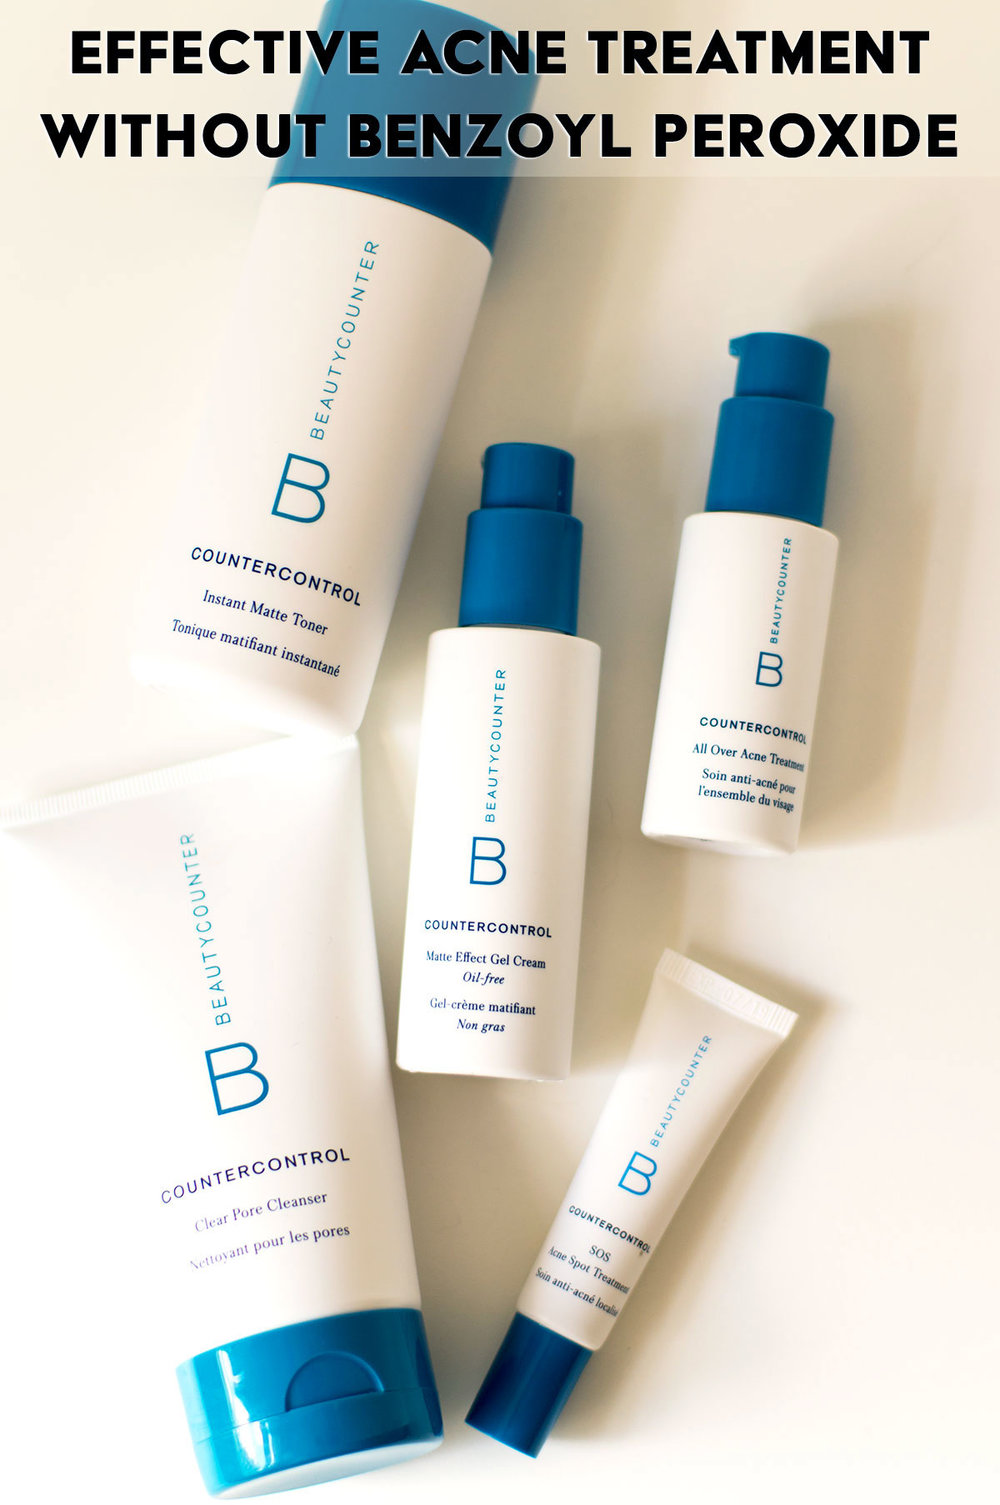 Beautycounter Countercontrol: safe, non-toxic acne treatment with salicylic acid and beneficial botanicals